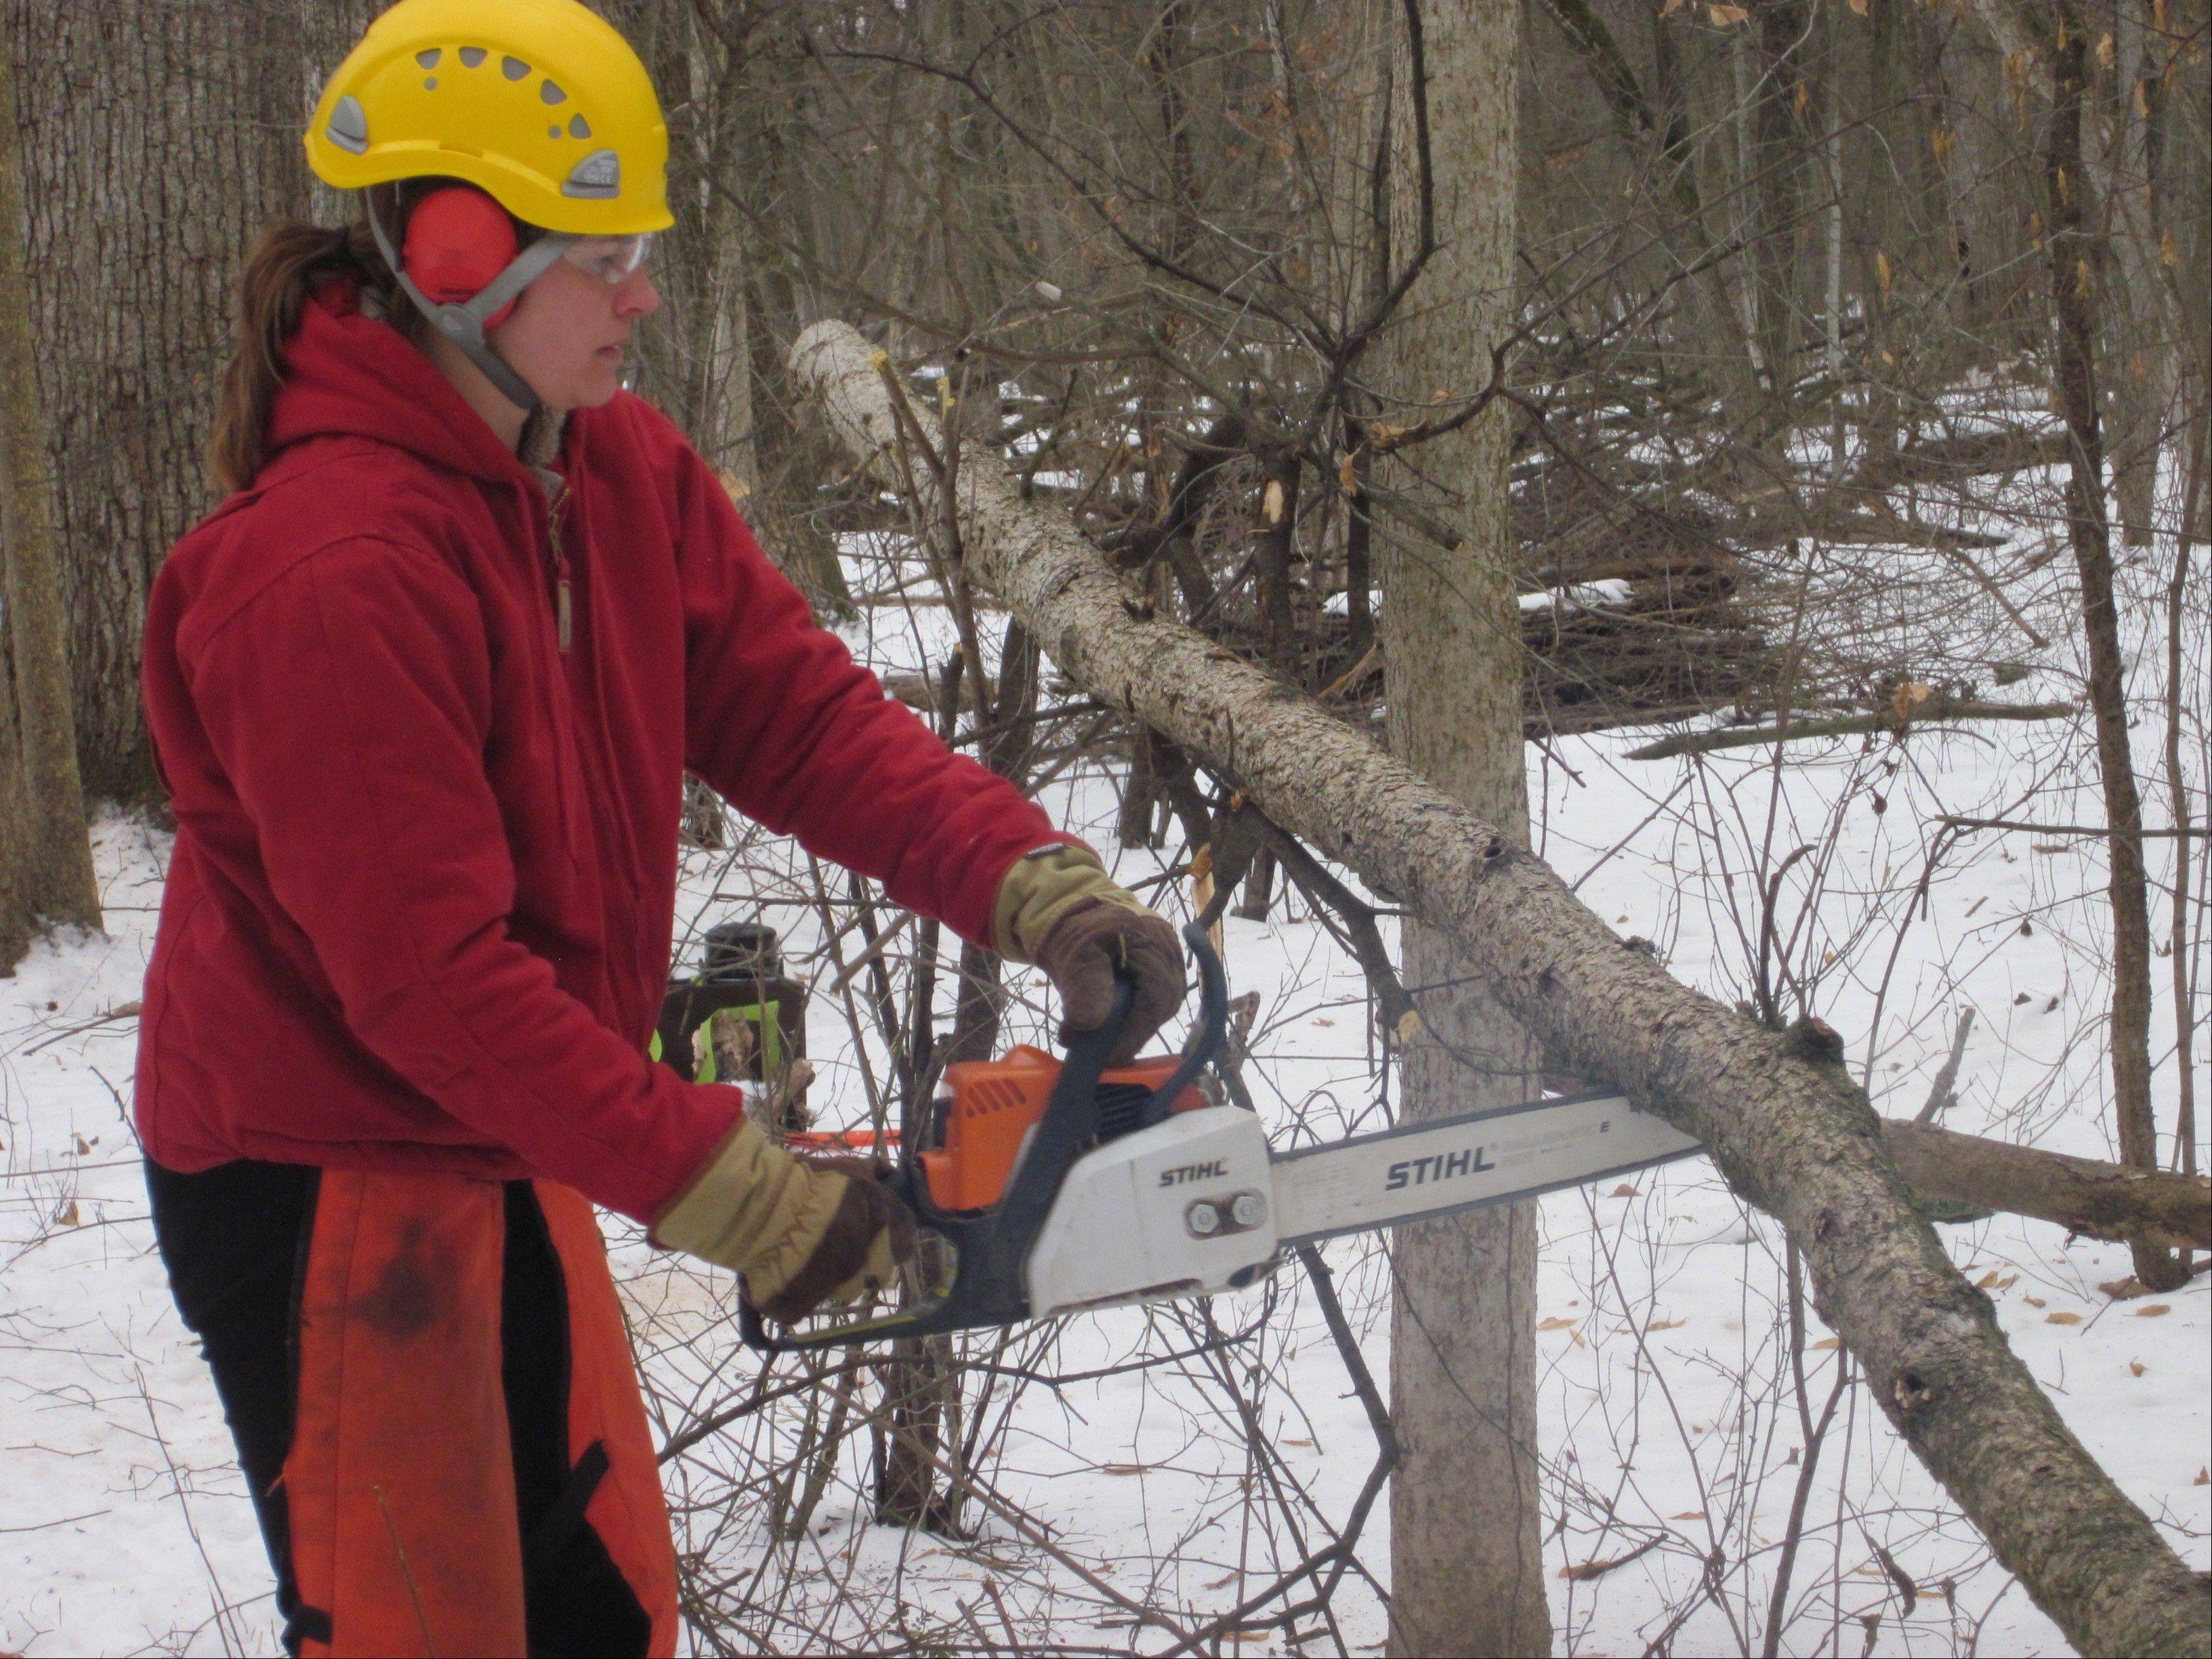 Heather Decker, site steward for Wilmot Woods Forest Preserve near Libertyville, uses a chain saw to cut invasive buckthorn Sunday during a restoration work day. She said winter is the best time to remove the invasive species because other vegetation is dormant.